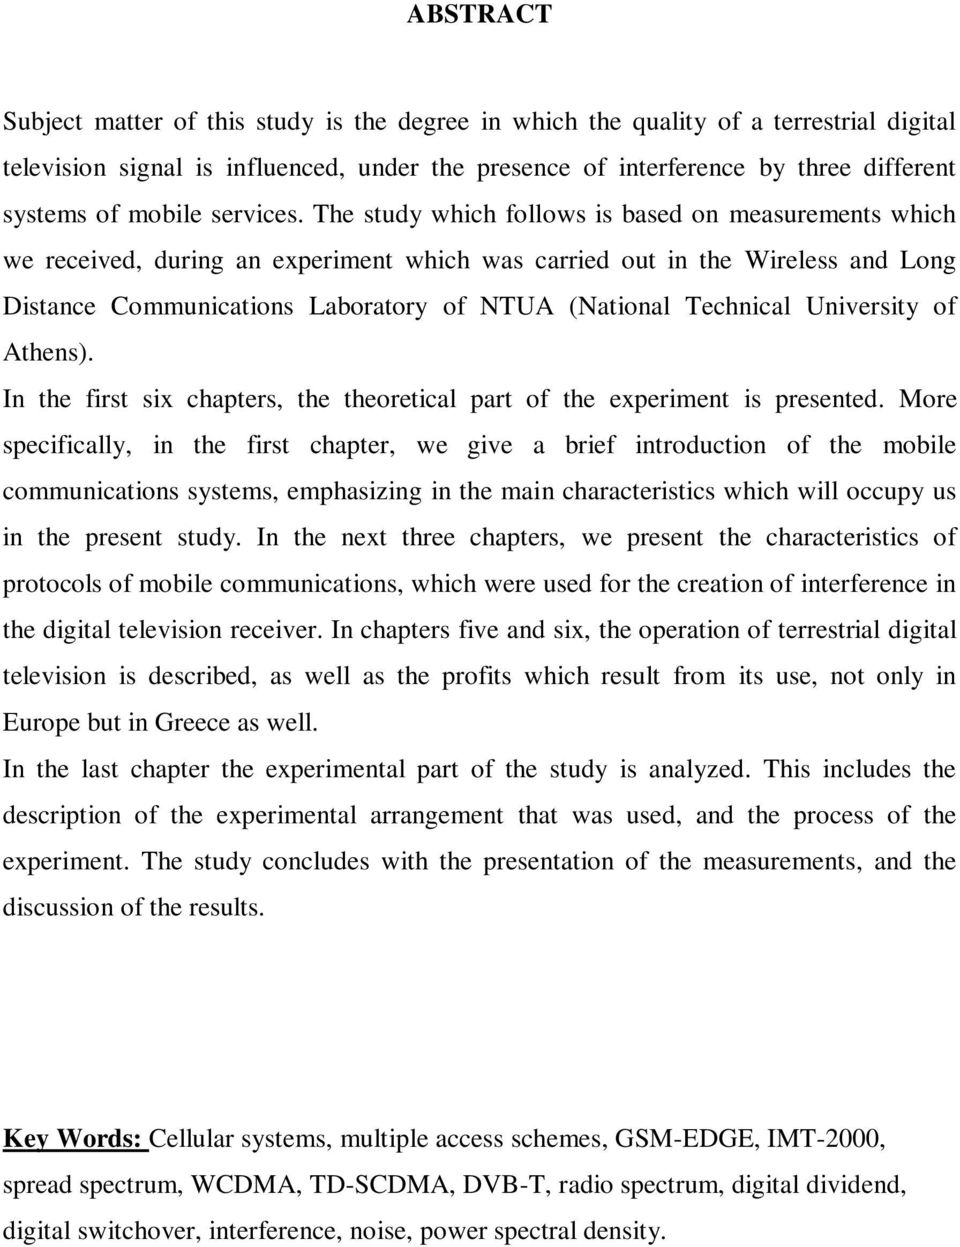 The study which follows is based on measurements which we received, during an experiment which was carried out in the Wireless and Long Distance Communications Laboratory of NTUA (National Technical